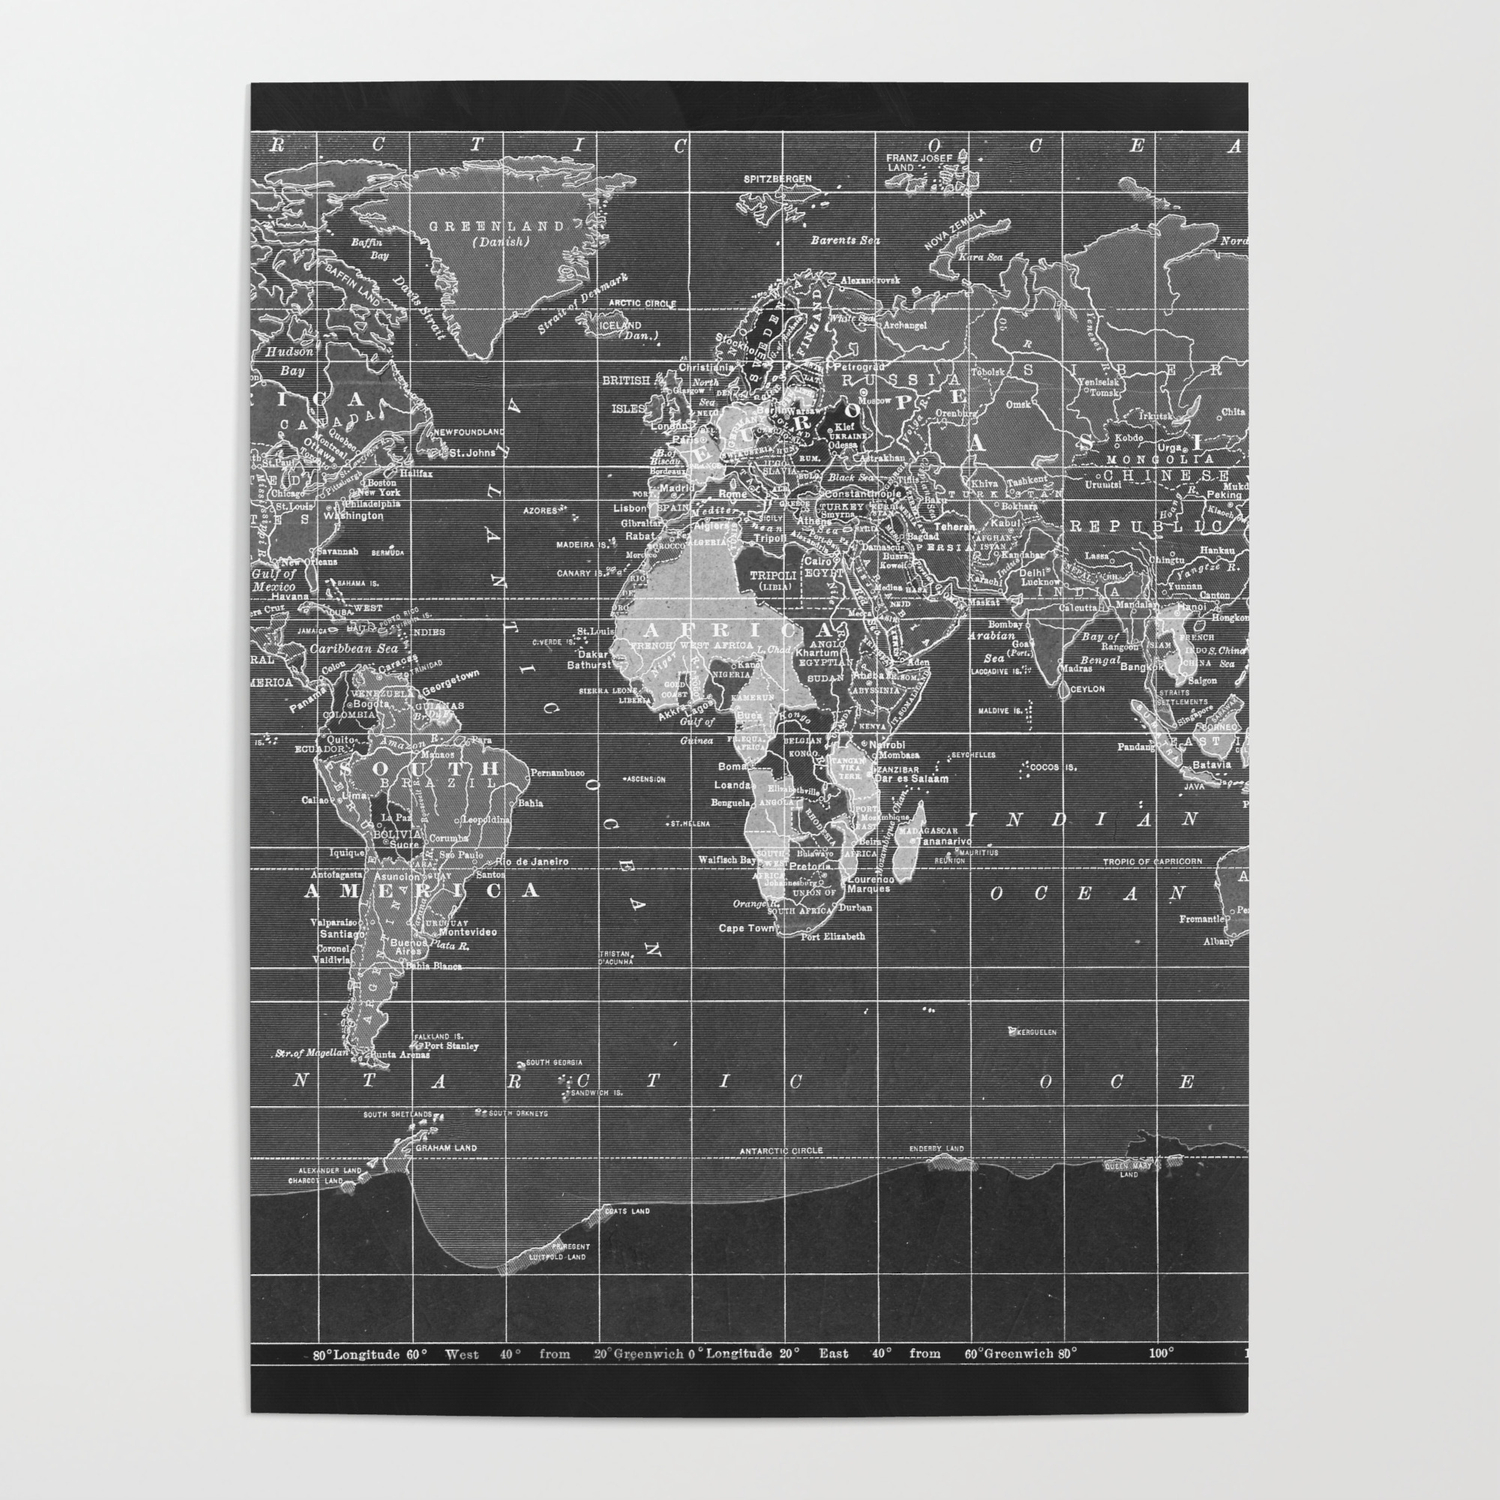 Black and White Vintage World Map Poster by catherineholcombe on italy vintage poster, travel vintage poster, blue vintage poster, popular vintage poster, cambodia vintage poster, water vintage poster, switzerland vintage poster, architecture vintage poster, austria vintage poster, usa vintage poster, wallpapers vintage poster, japan vintage poster, solar system vintage poster, egypt vintage poster, london vintage poster, hong kong vintage poster, atlas vintage poster, indonesia vintage poster, india vintage poster, spain vintage poster,